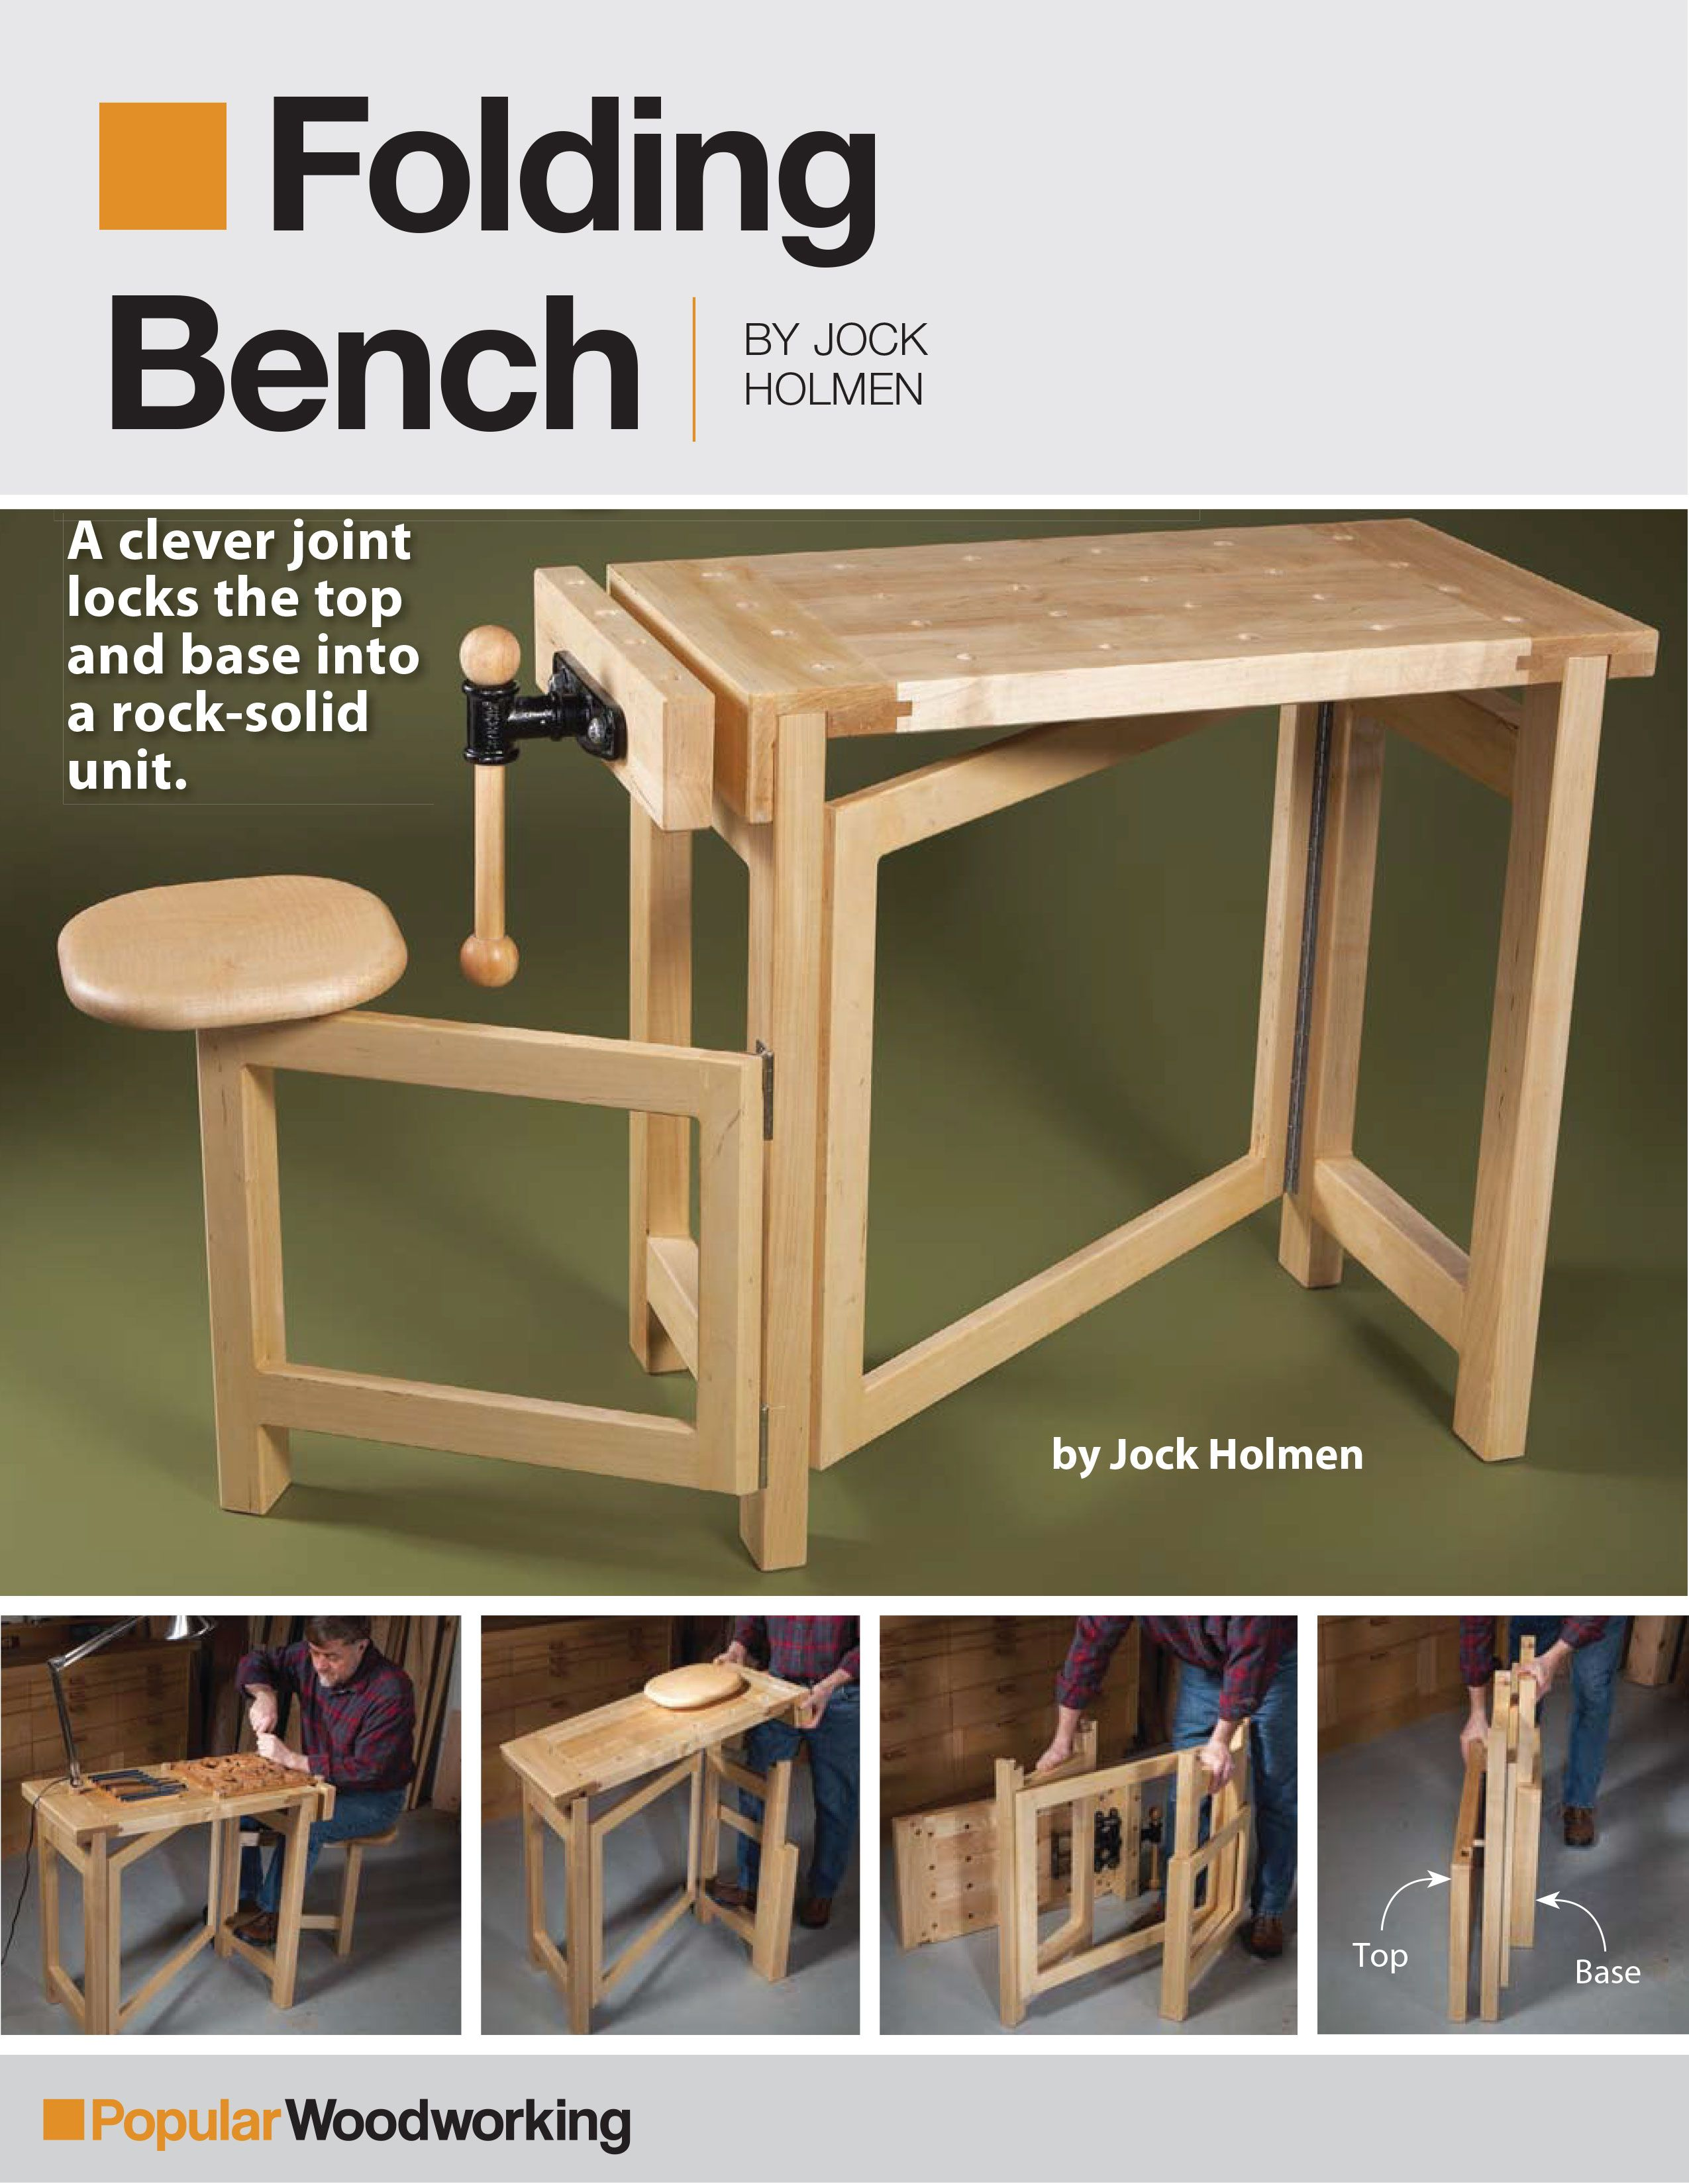 Folding Bench Project Download in 2020 | Popular ...